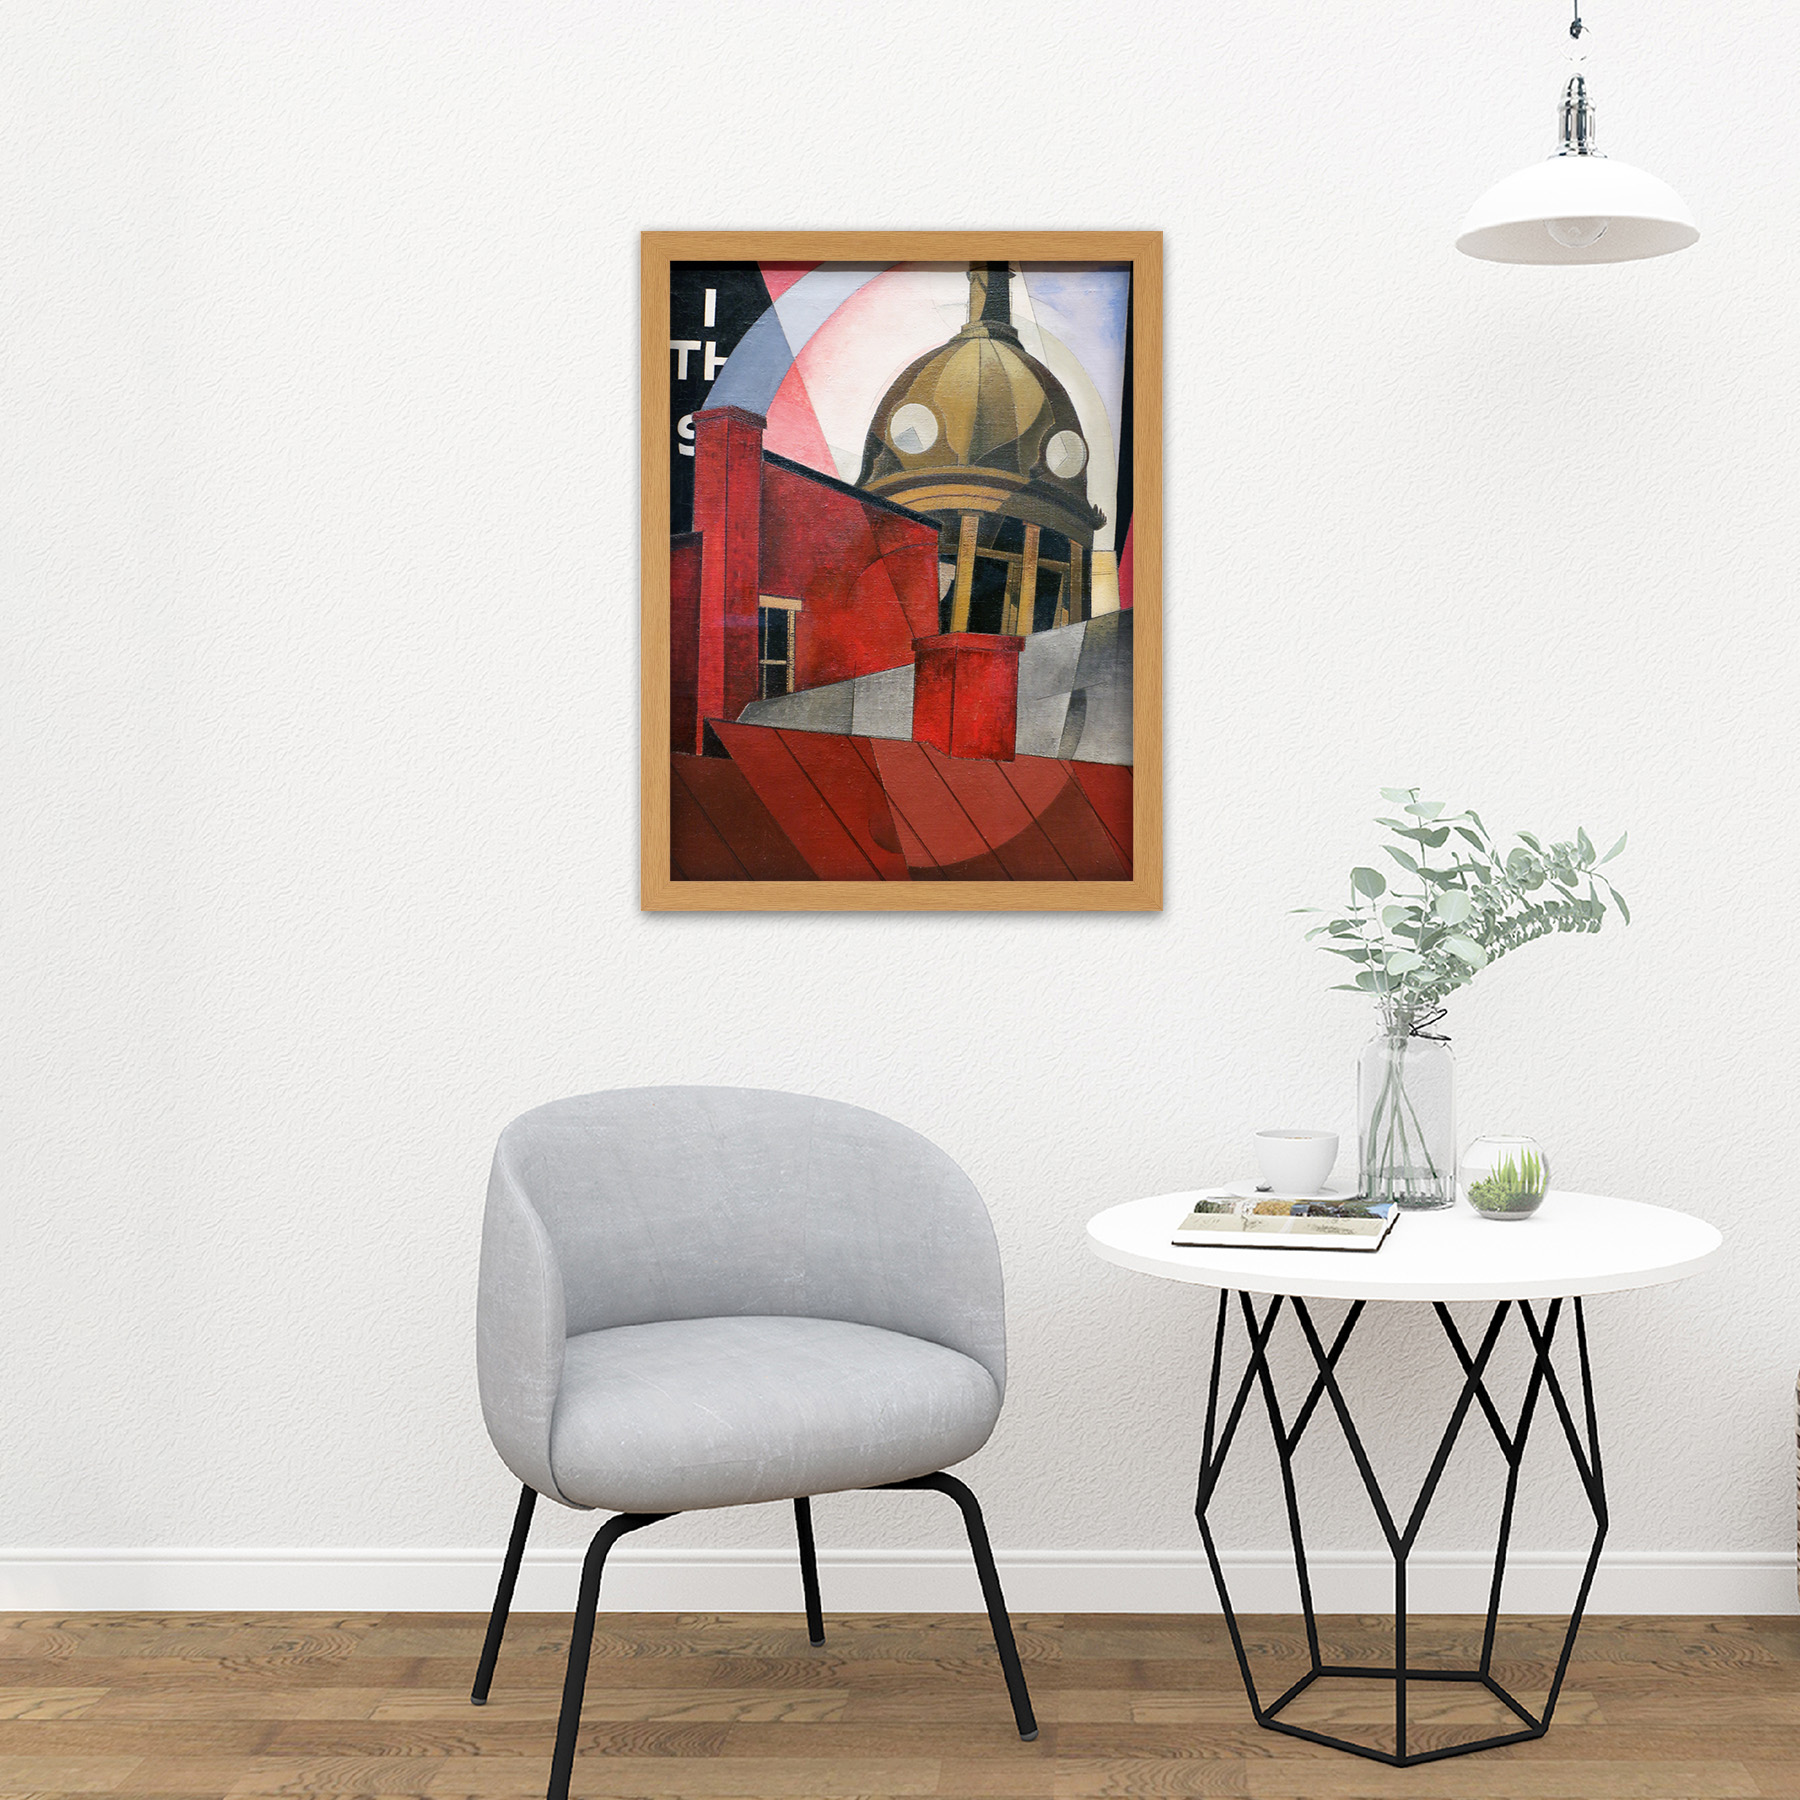 Demuth-Welcome-City-Red-Tower-Painting-Large-Framed-Art-Print thumbnail 18